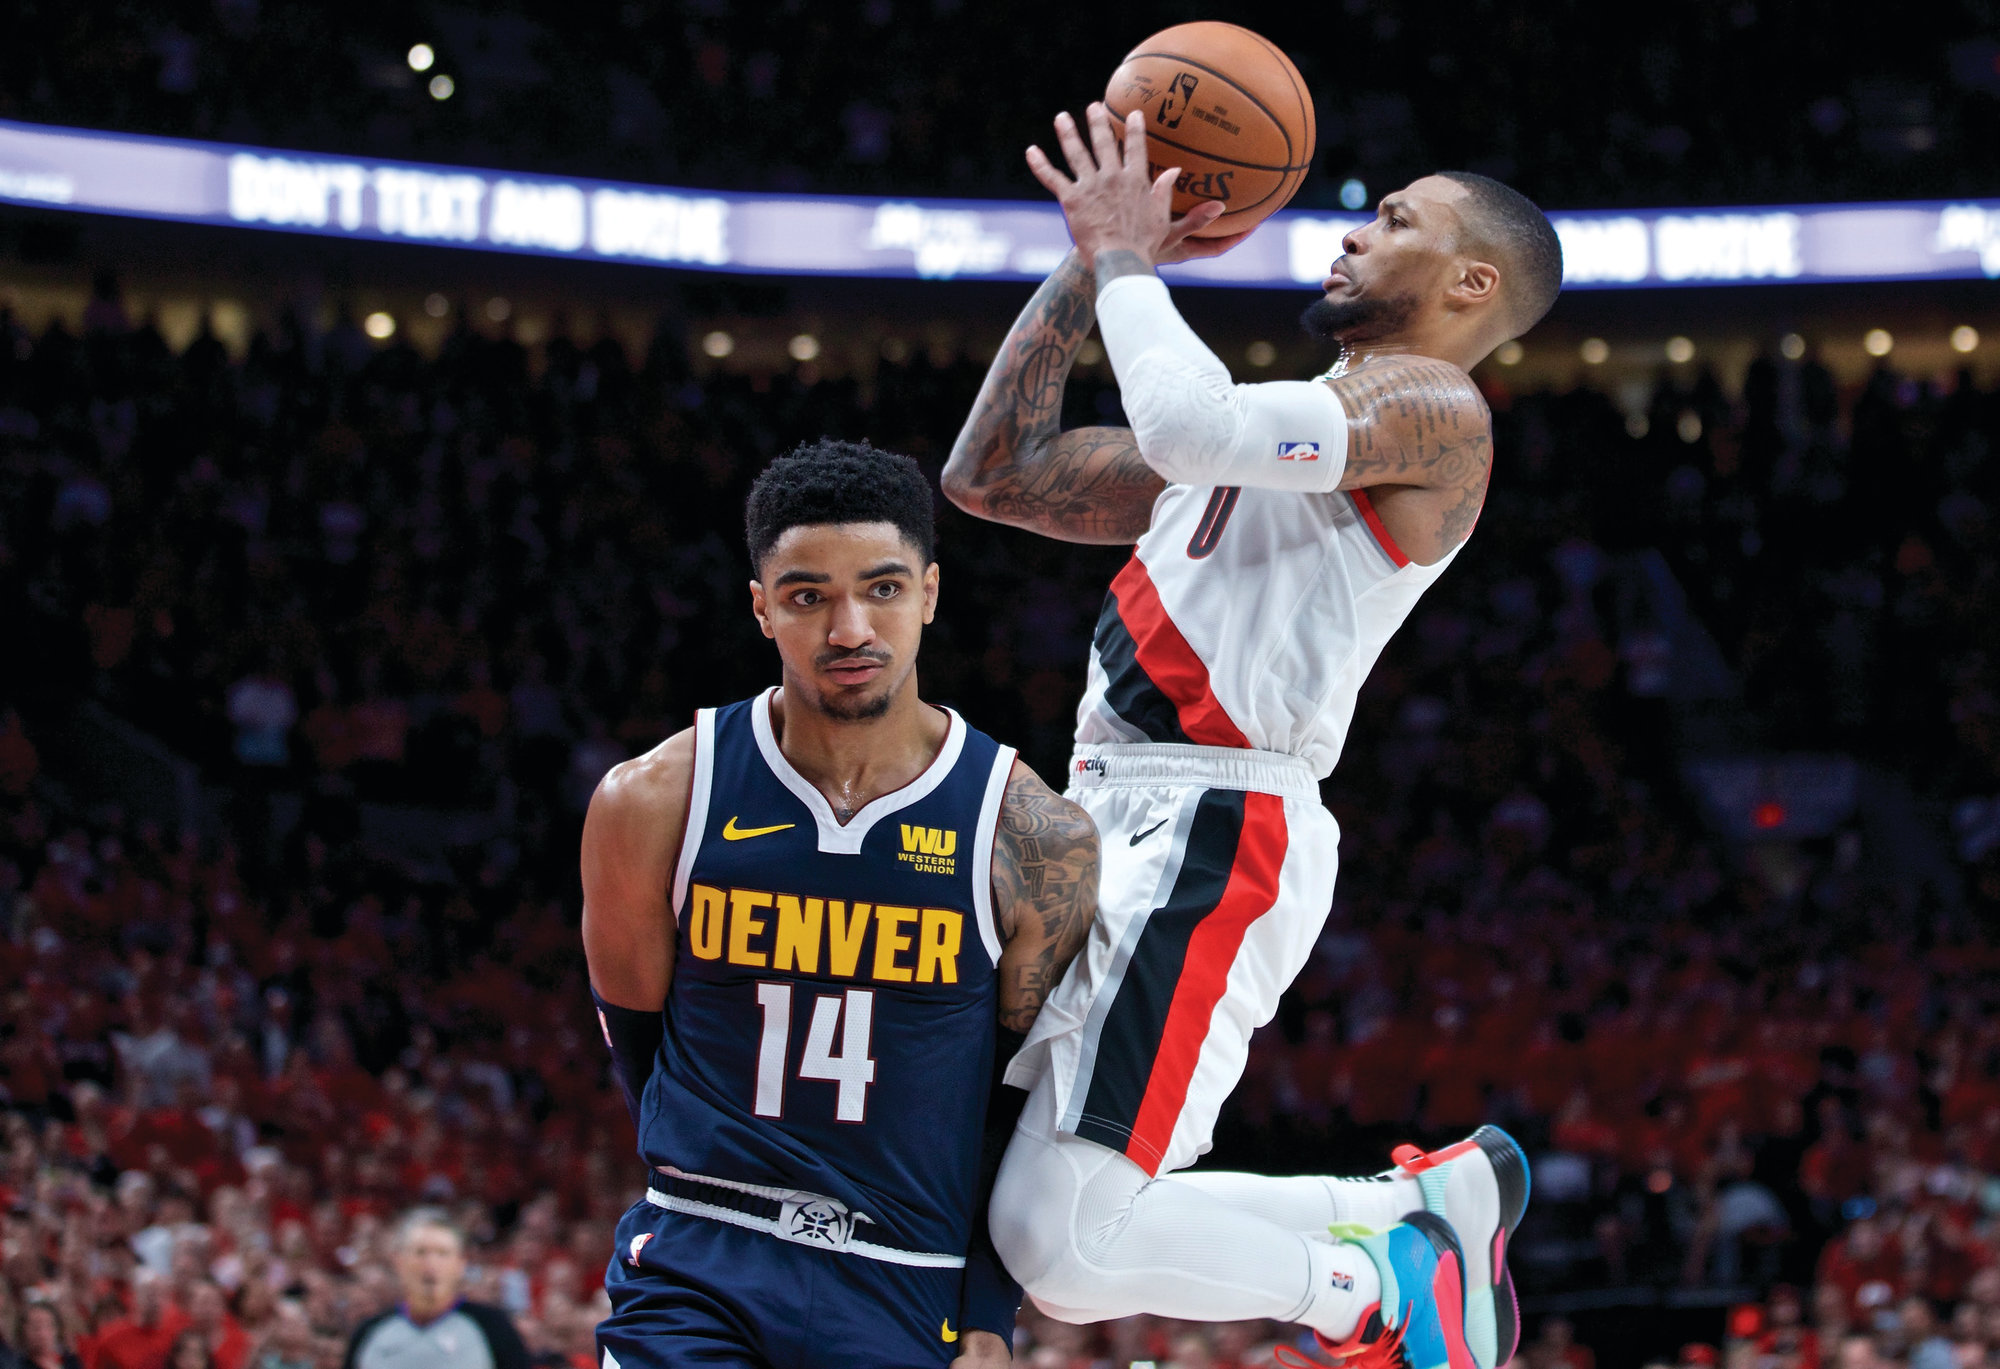 Nuggets Blazers Raptors 76ers Are 2 Big Swing Games Tonight The Sumter Item